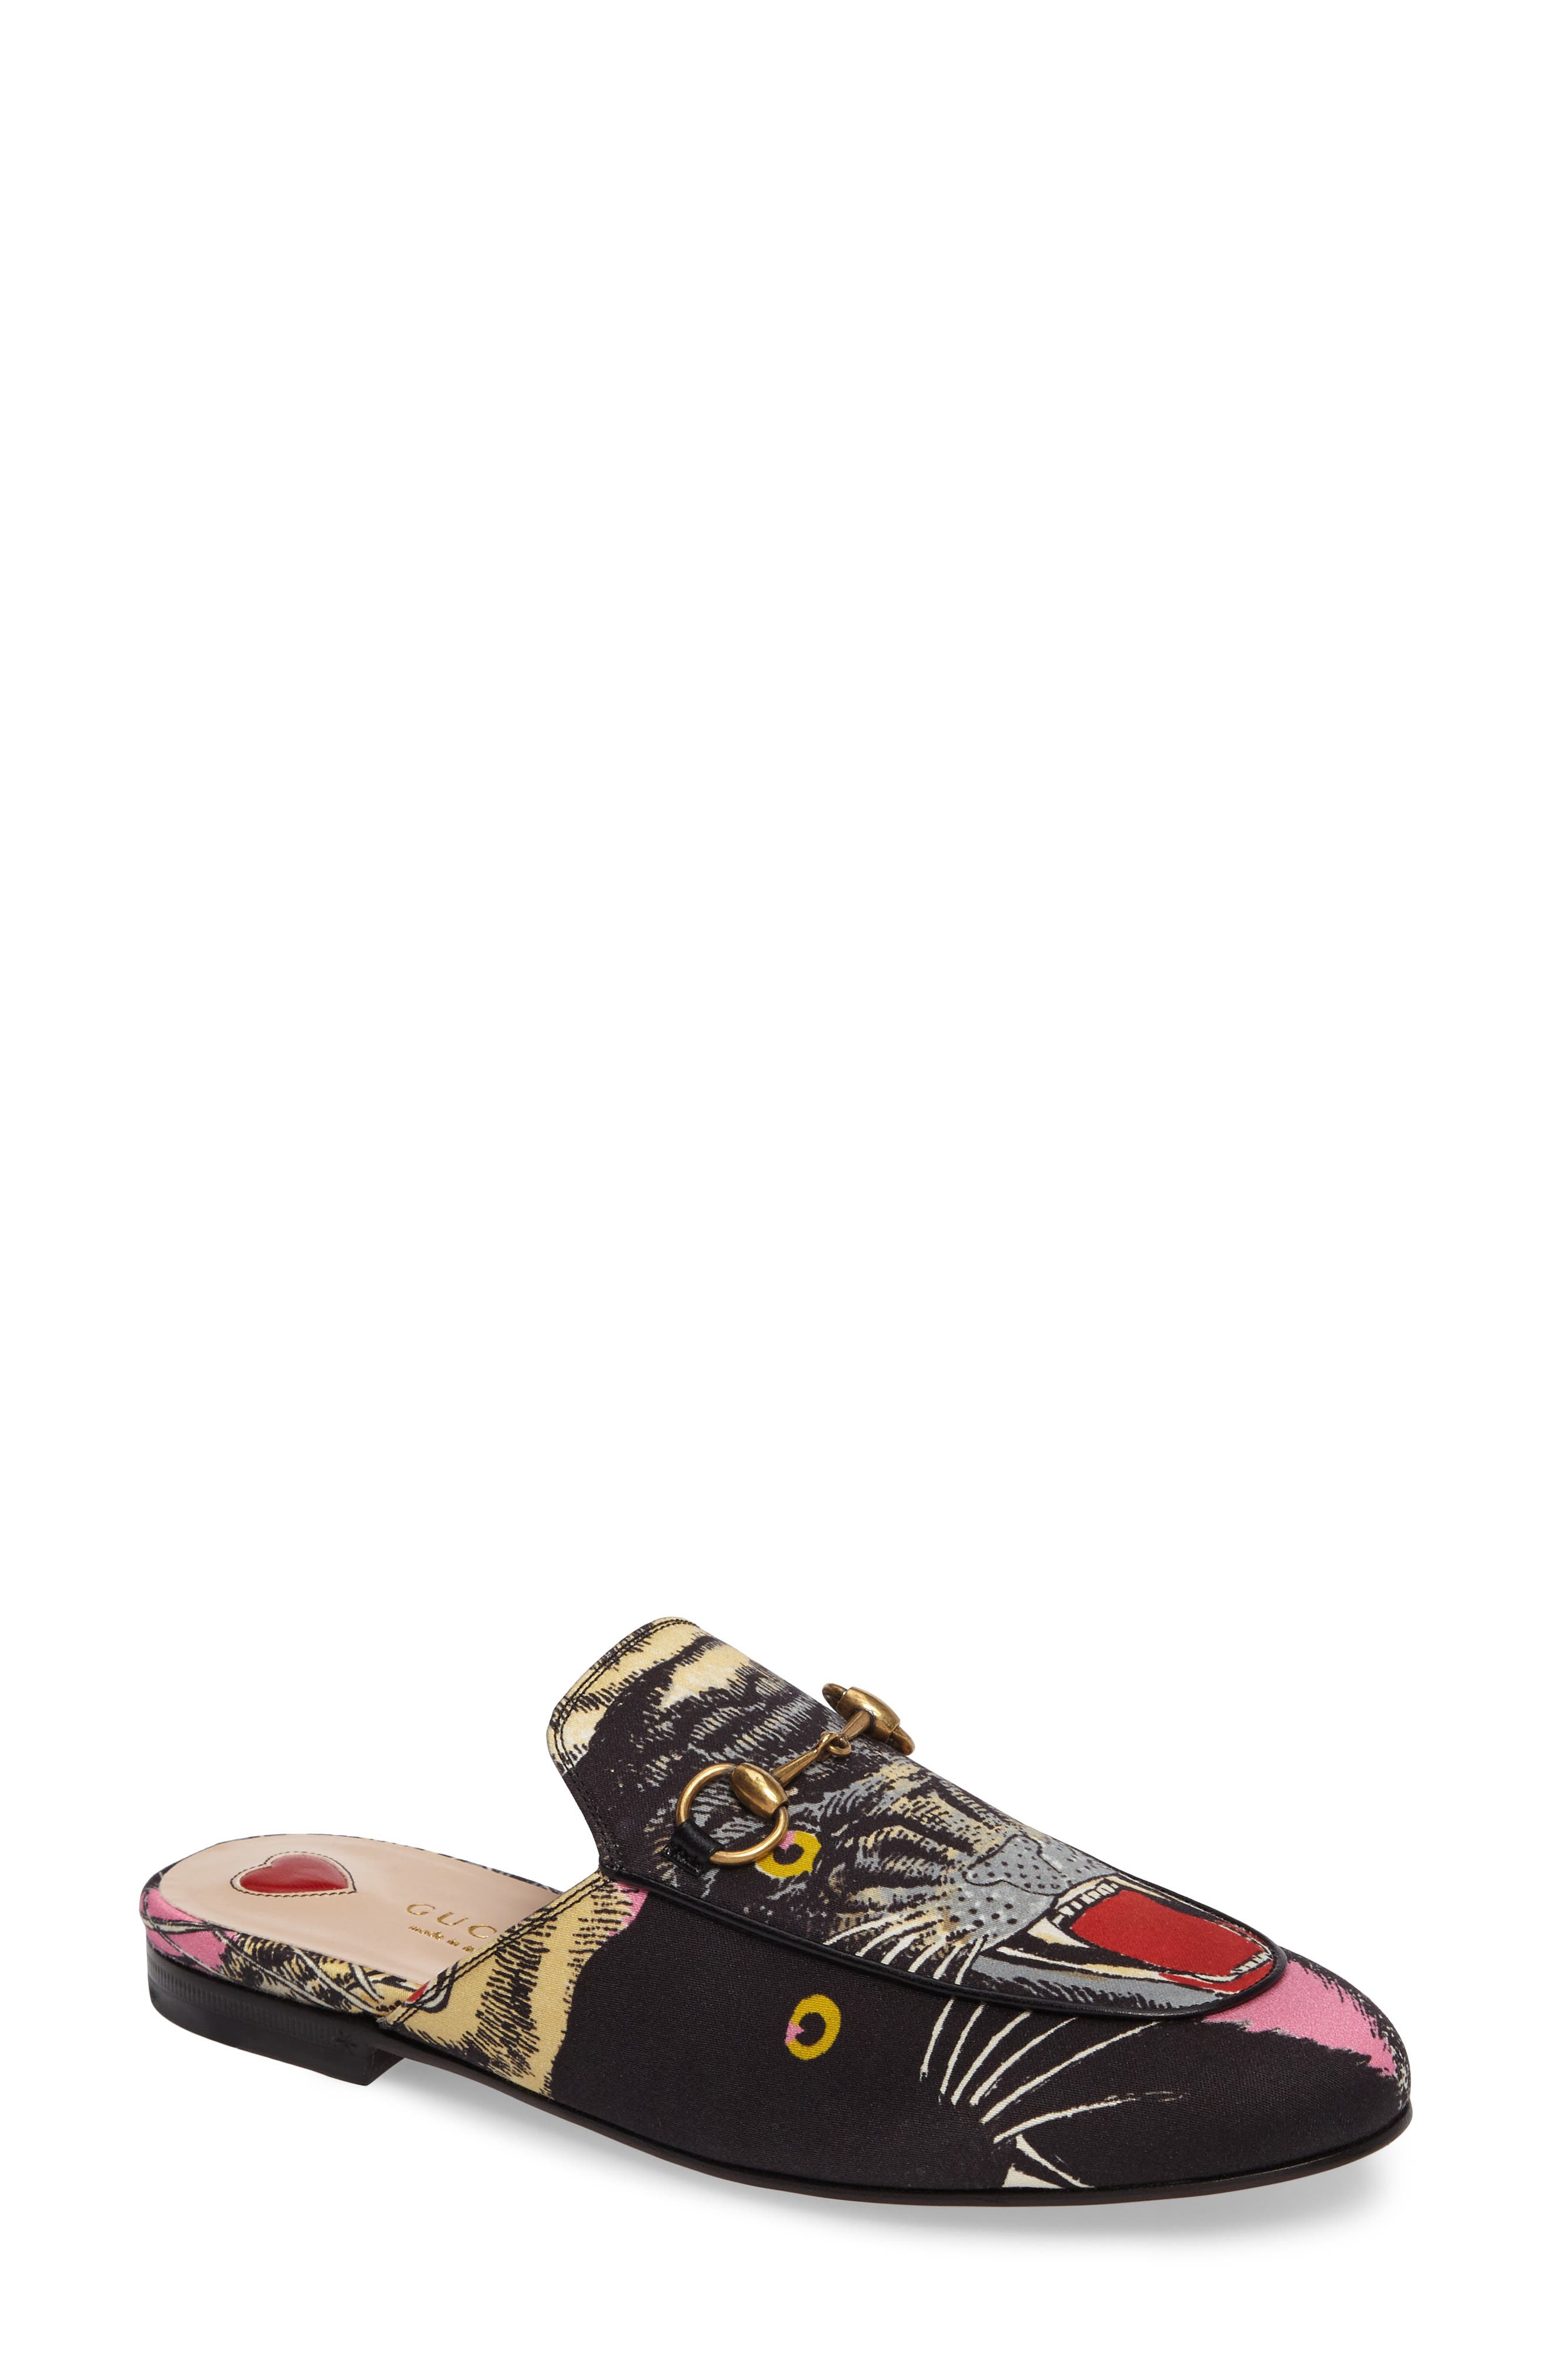 Princetown Angry Cat Mule Loafer,                             Main thumbnail 1, color,                             002